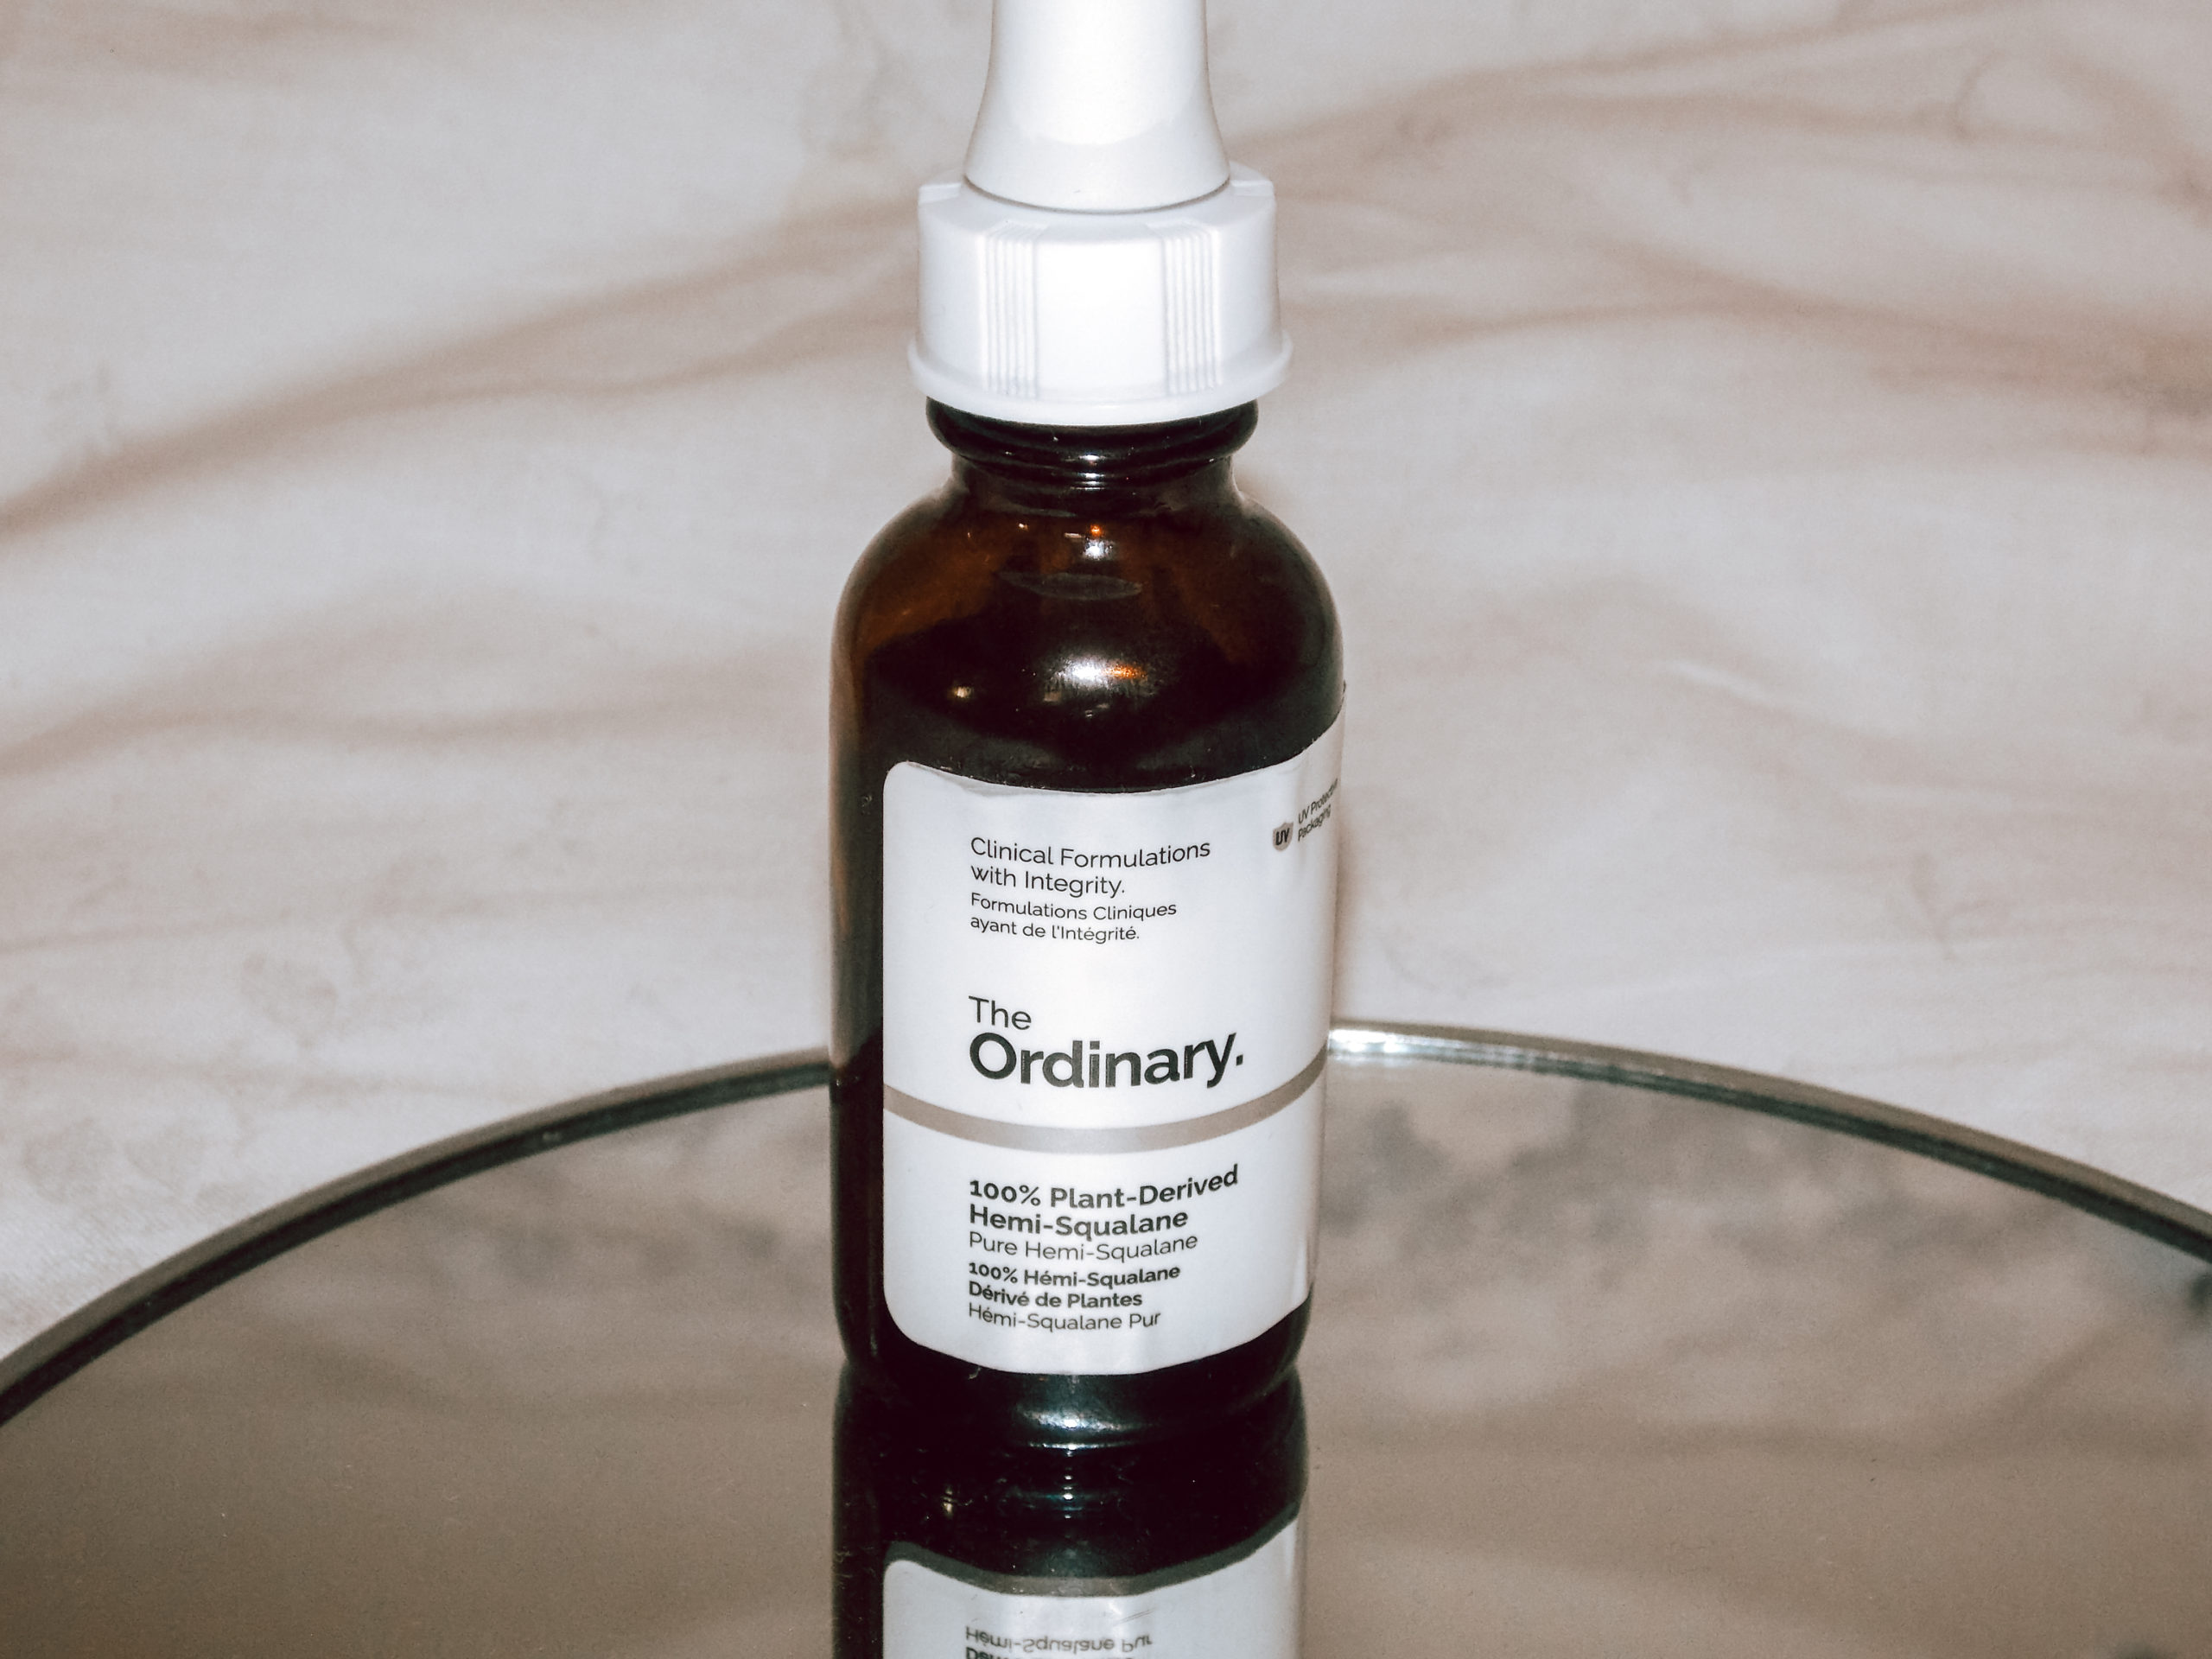 the ordinary 100% plant-derived hemi-squalane review recenzija livinglikev fashion blogger living like v